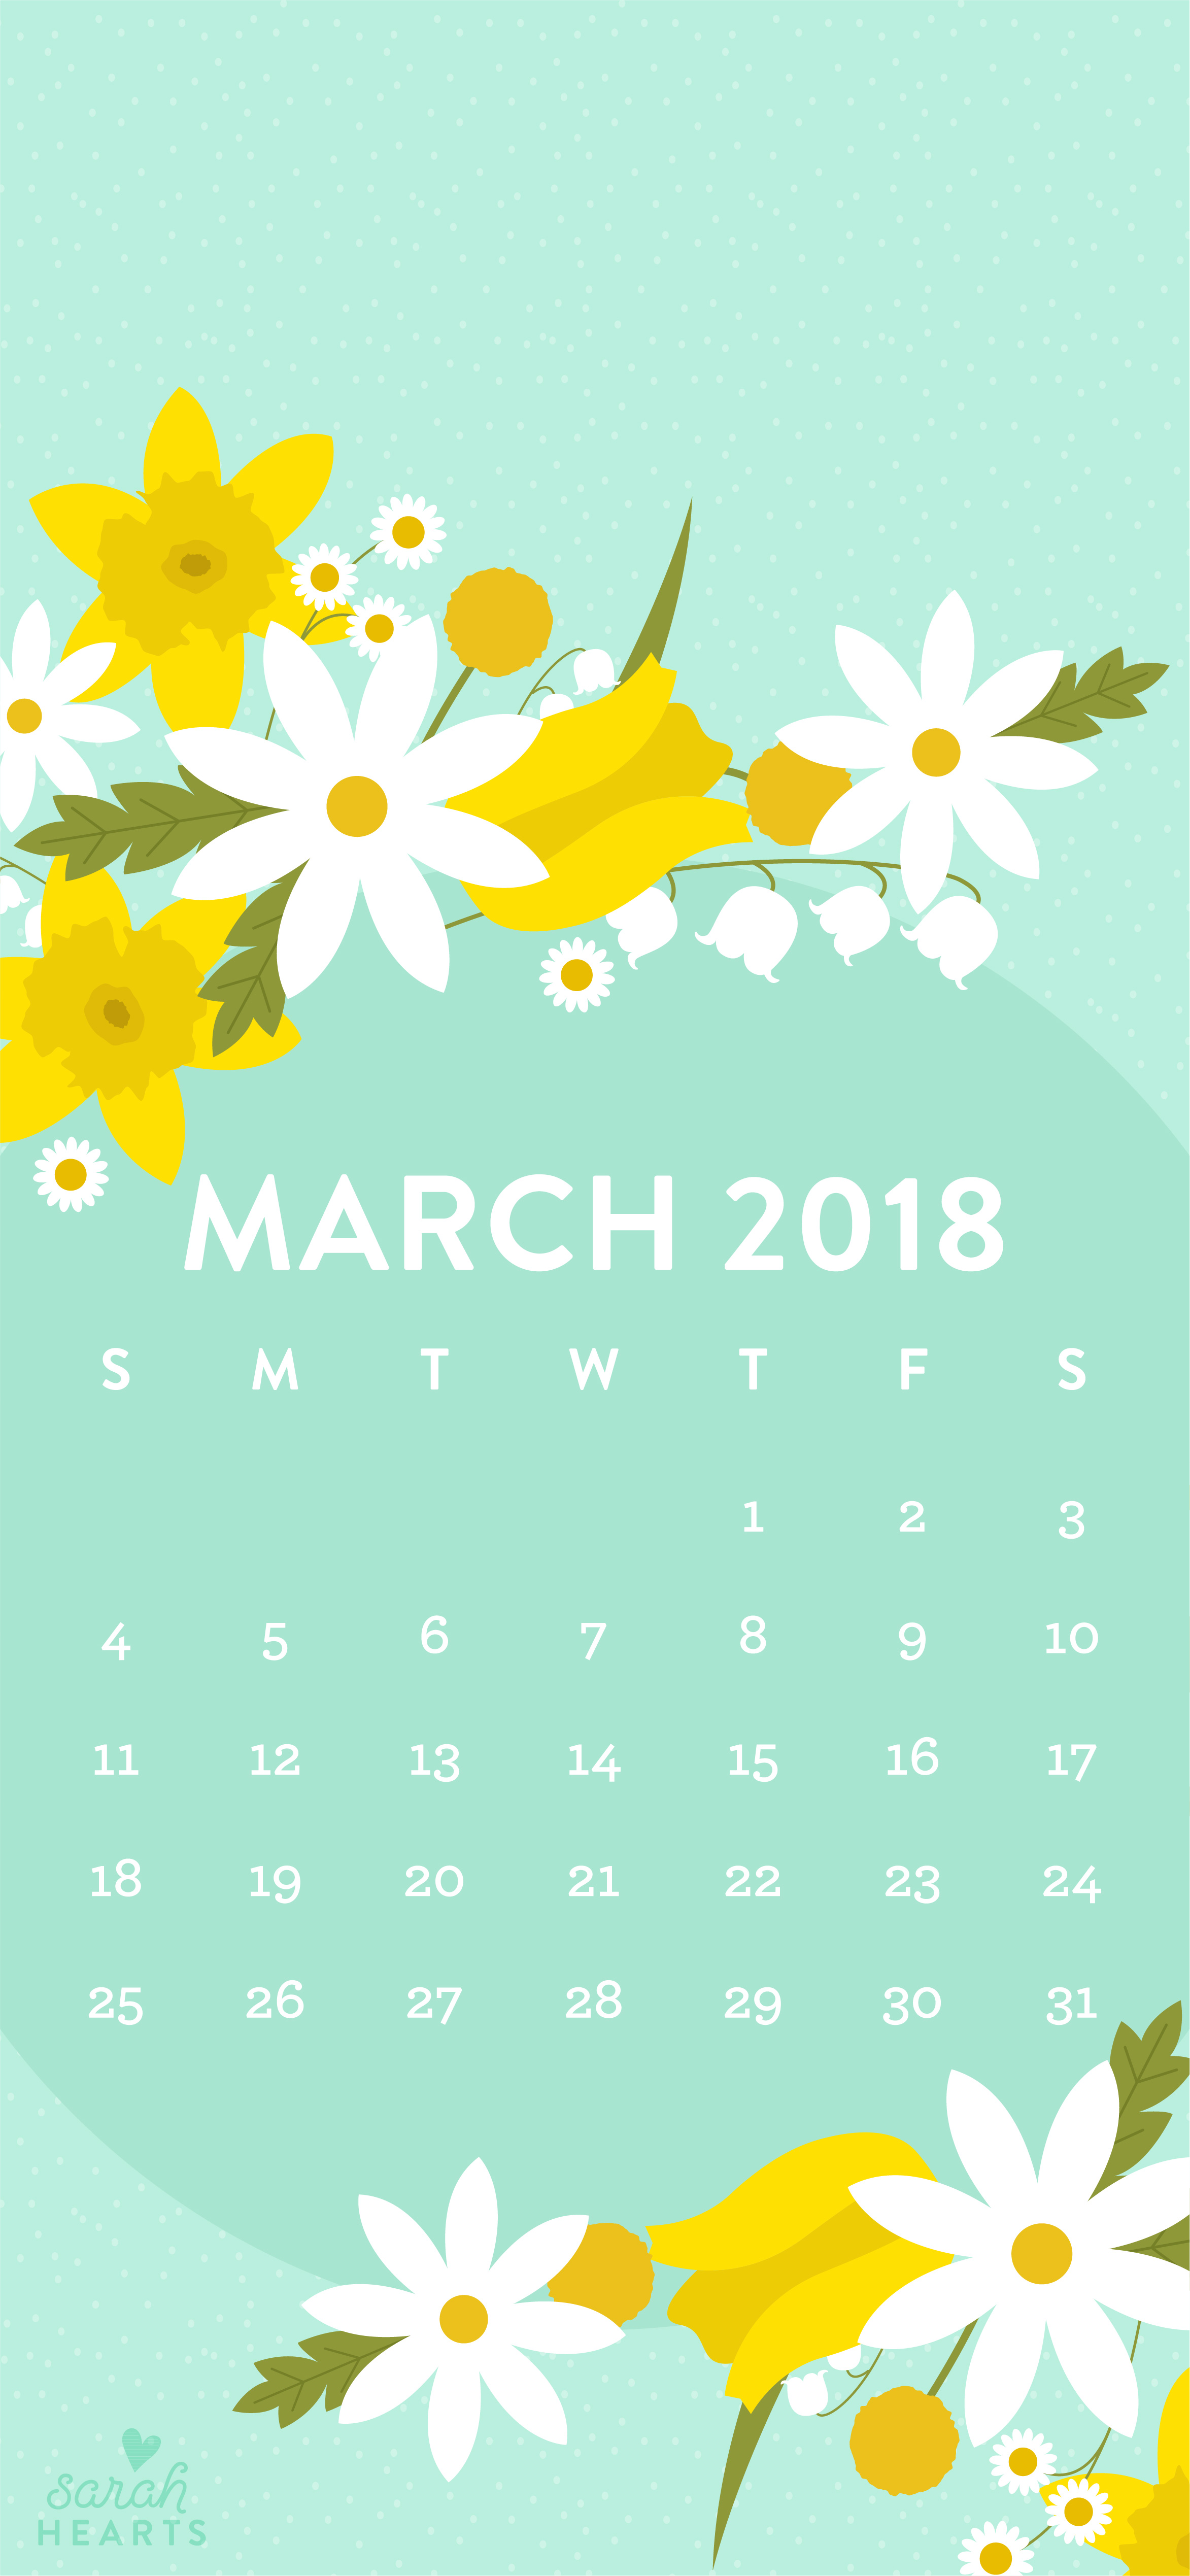 Happy Quotes Iphone Wallpaper March 2018 Spring Flower Calendar Wallpaper Sarah Hearts